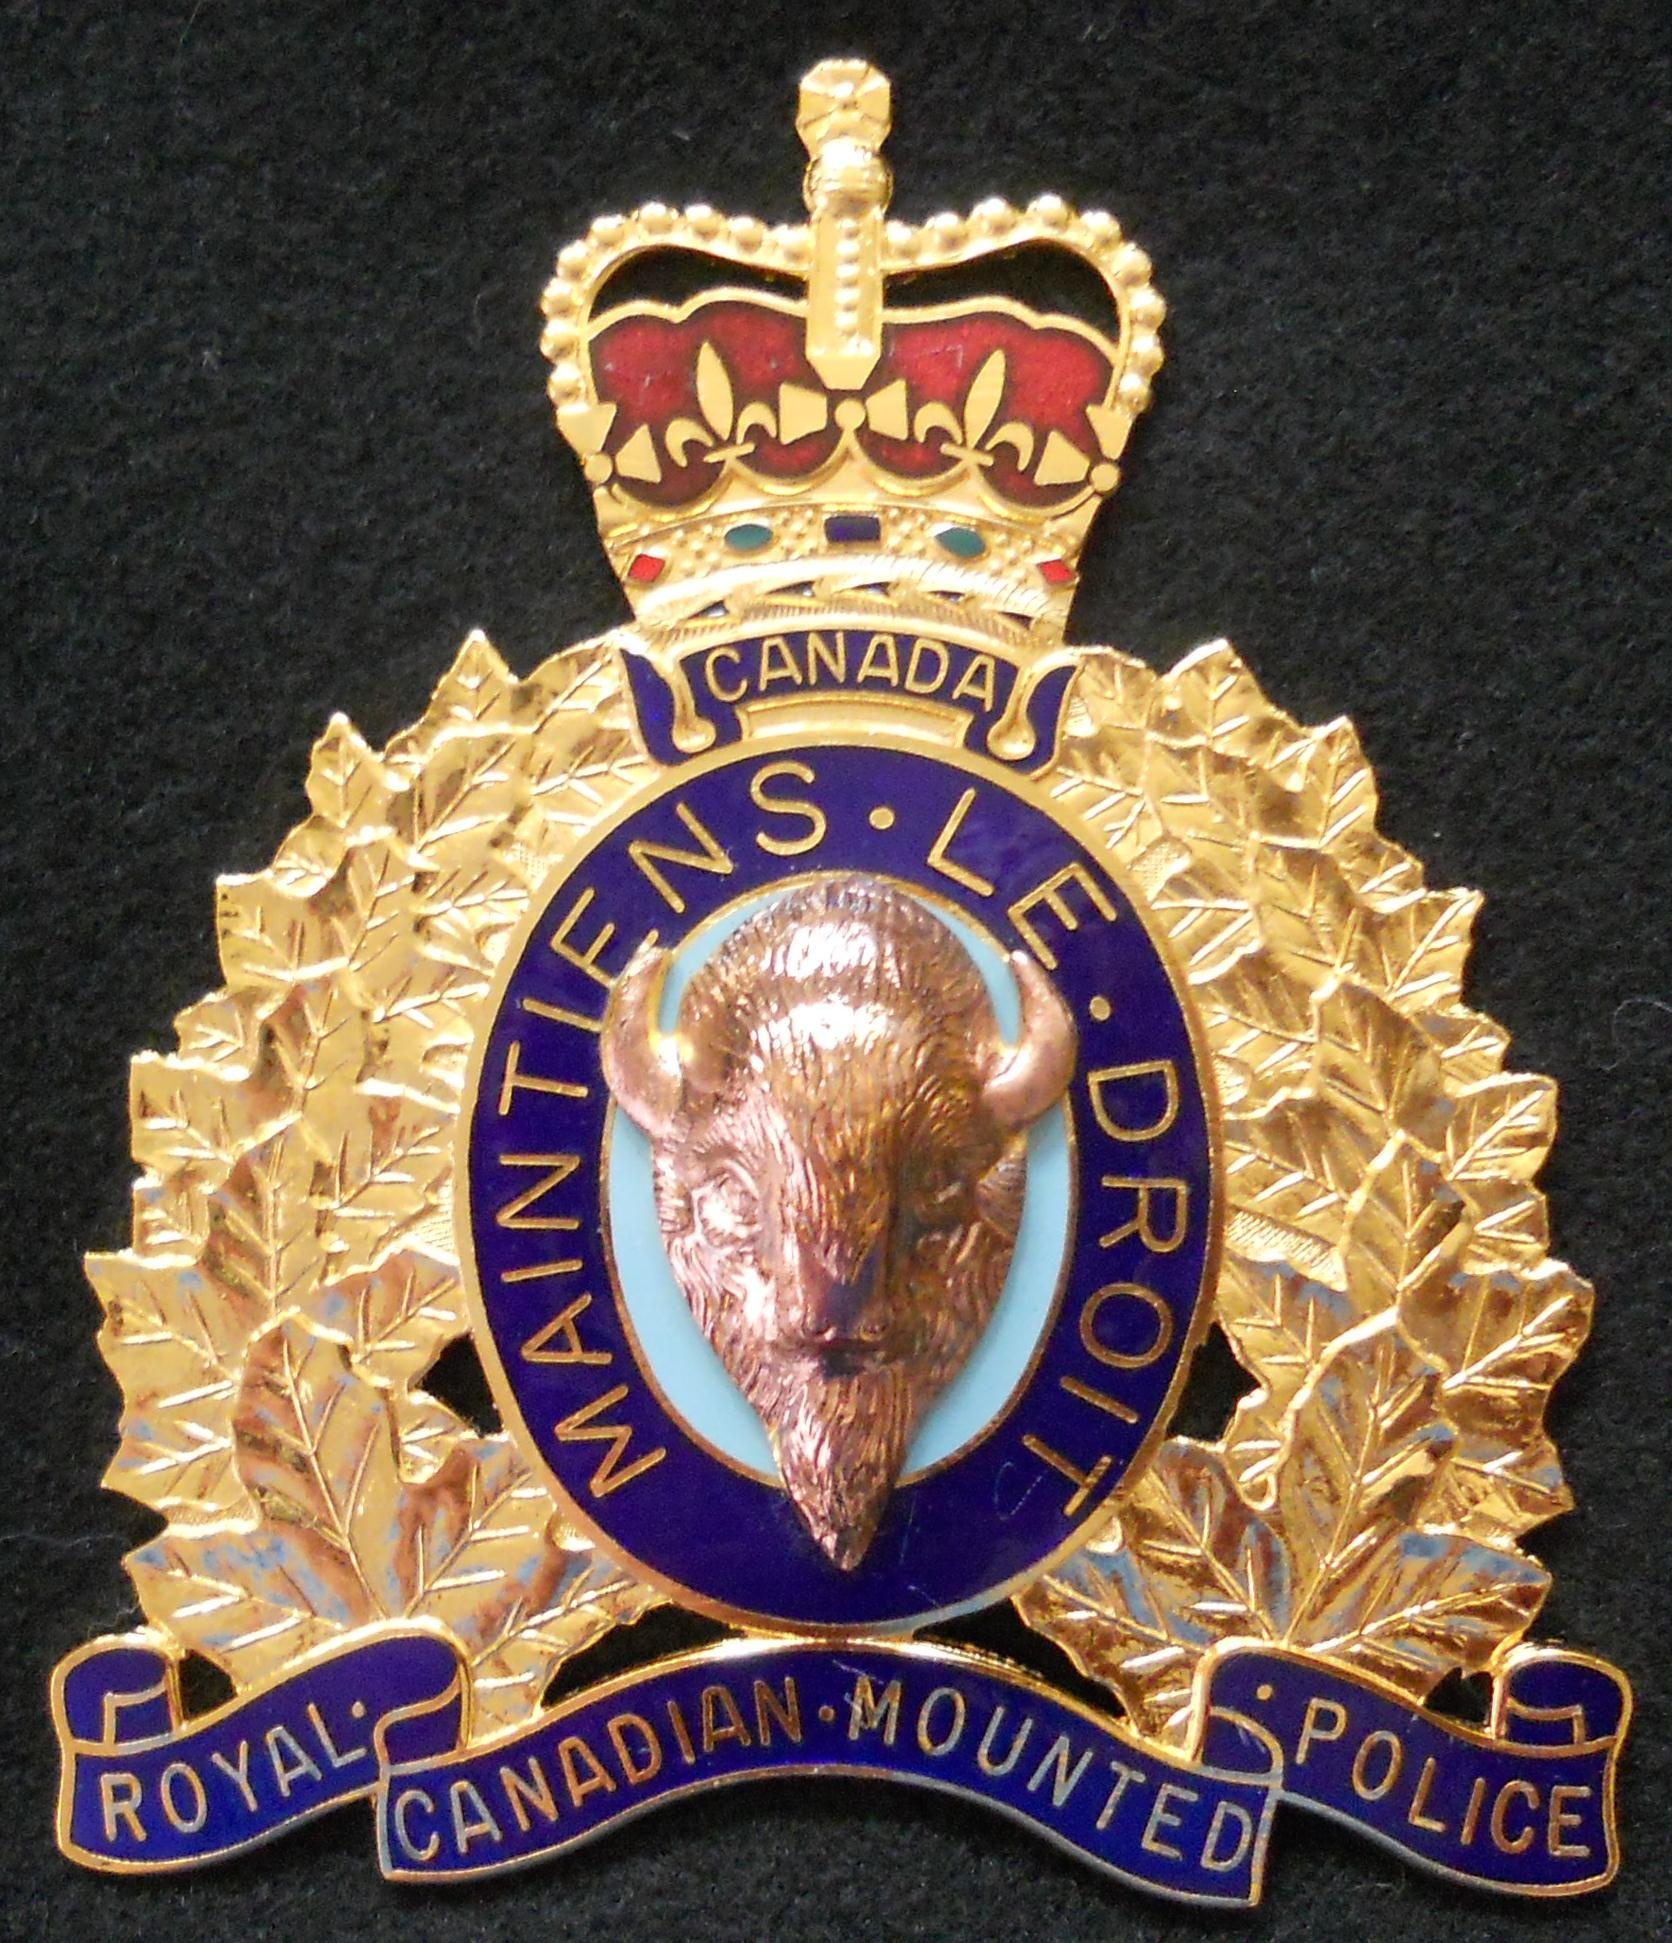 DEADLY COLLISION NEAR SLAVE LAKE